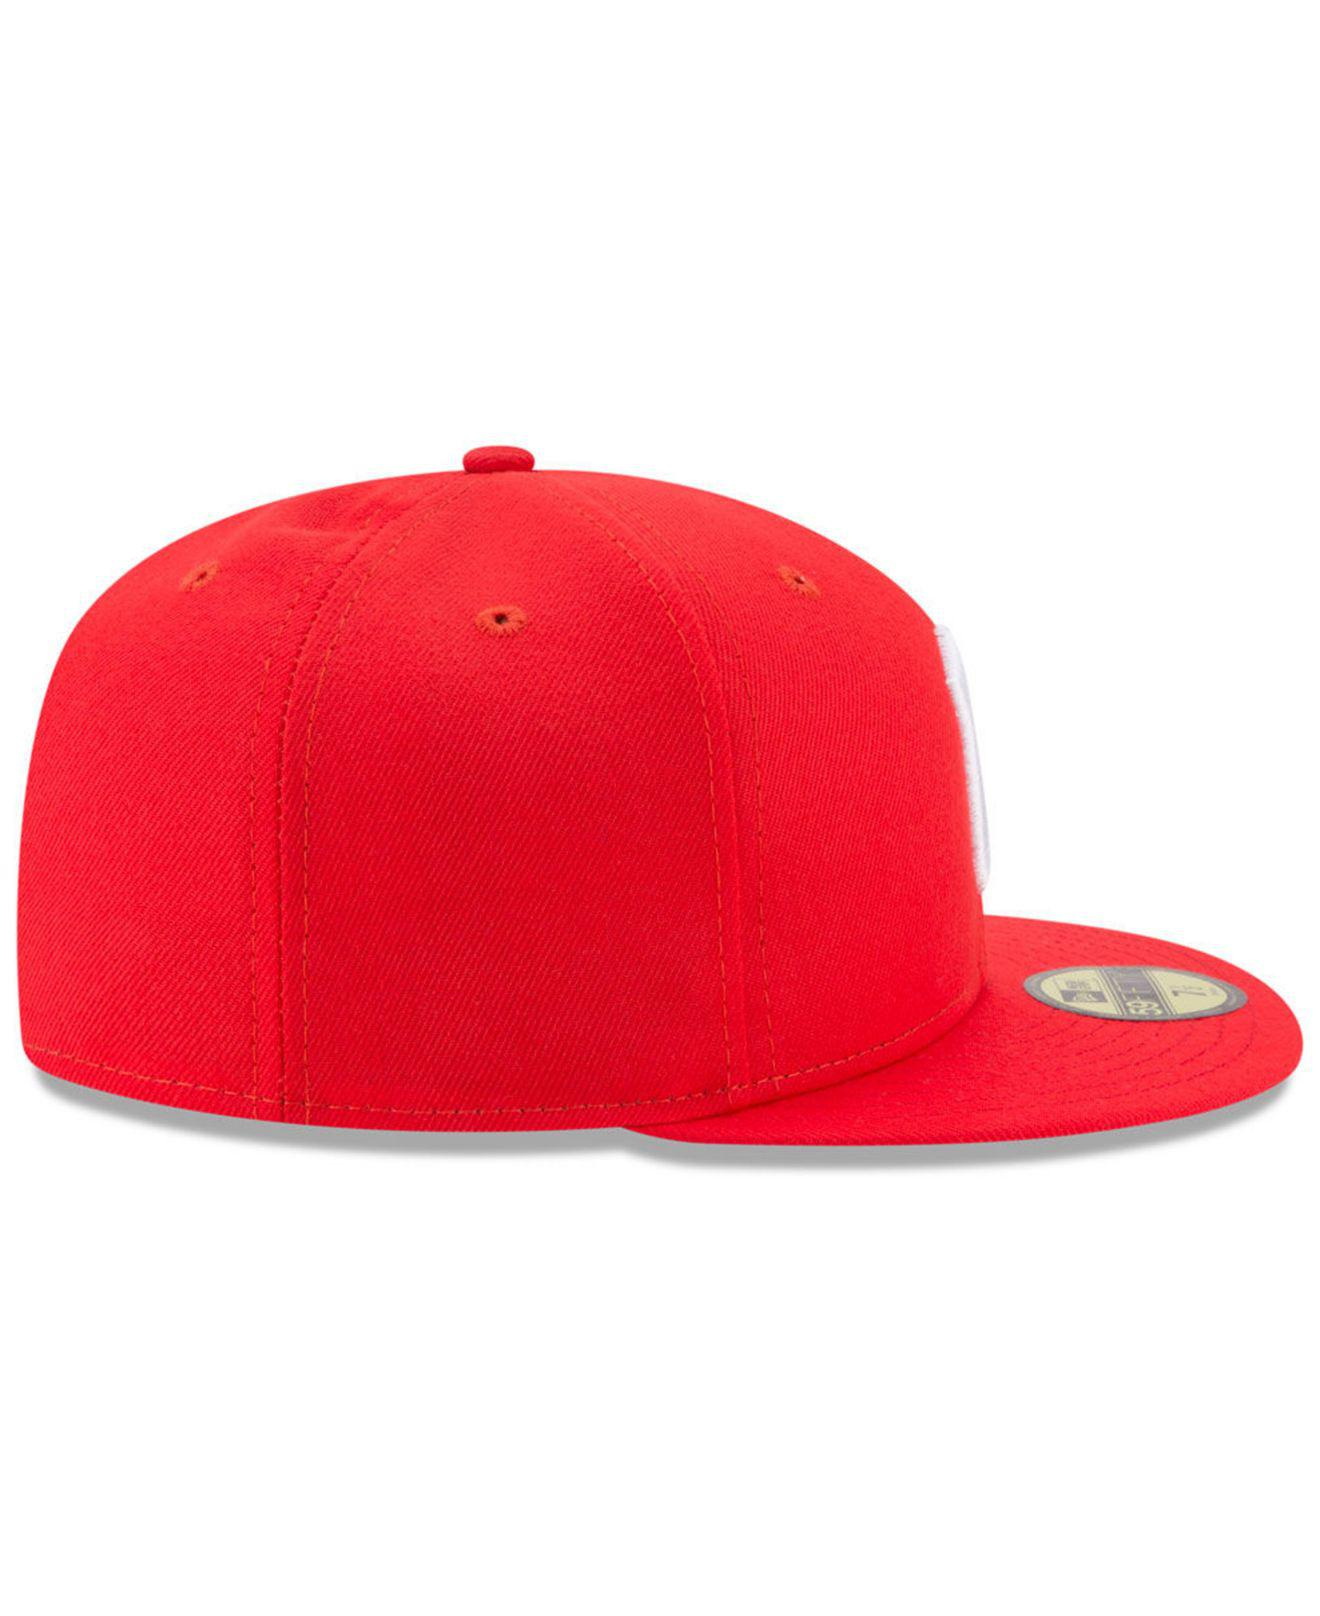 7c55900817b ... discount players weekend 59fifty fitted cap for men lyst. view  fullscreen 7c5bc 462d4